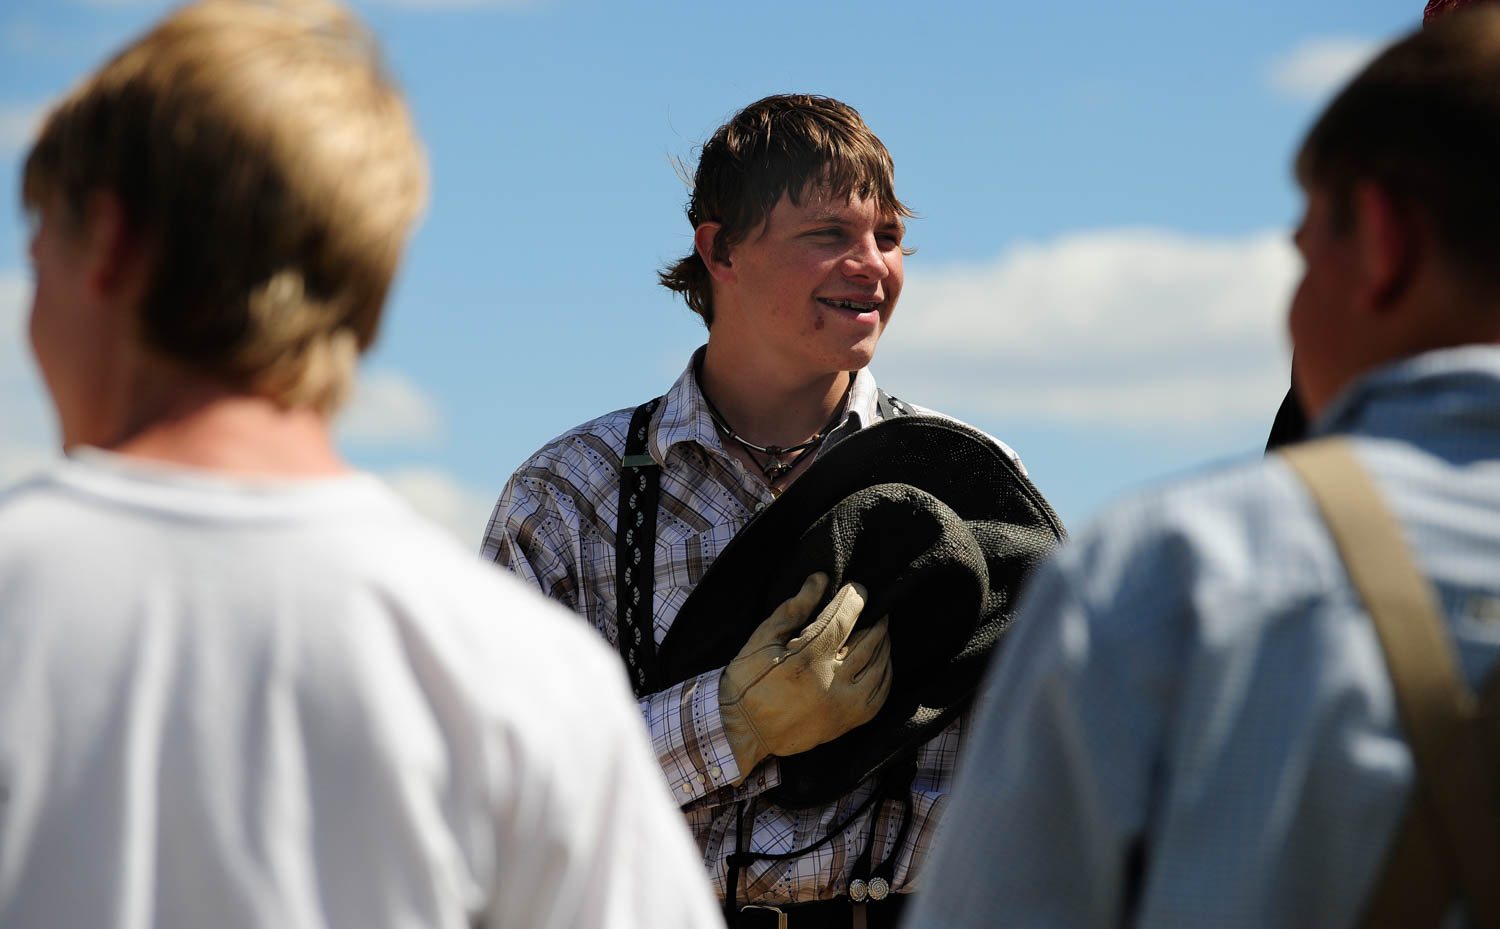 20090618_MORMON_TREK_BOY.jpg